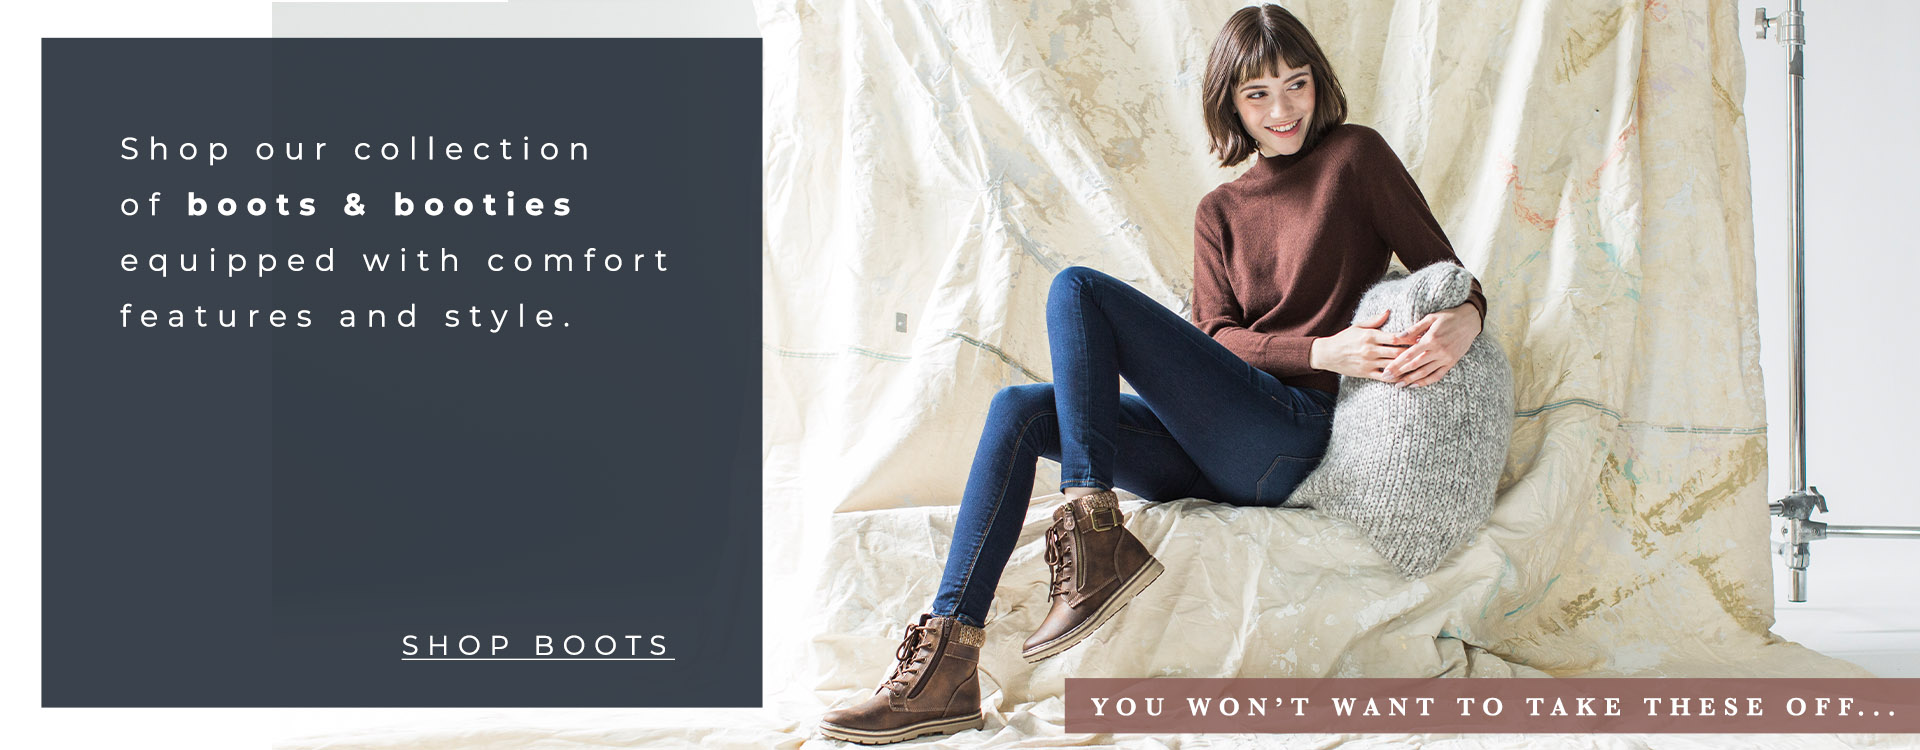 Shop our collection of boots & booties equipped with comfort features and style. | Shop Boots | You won't want to take these off...